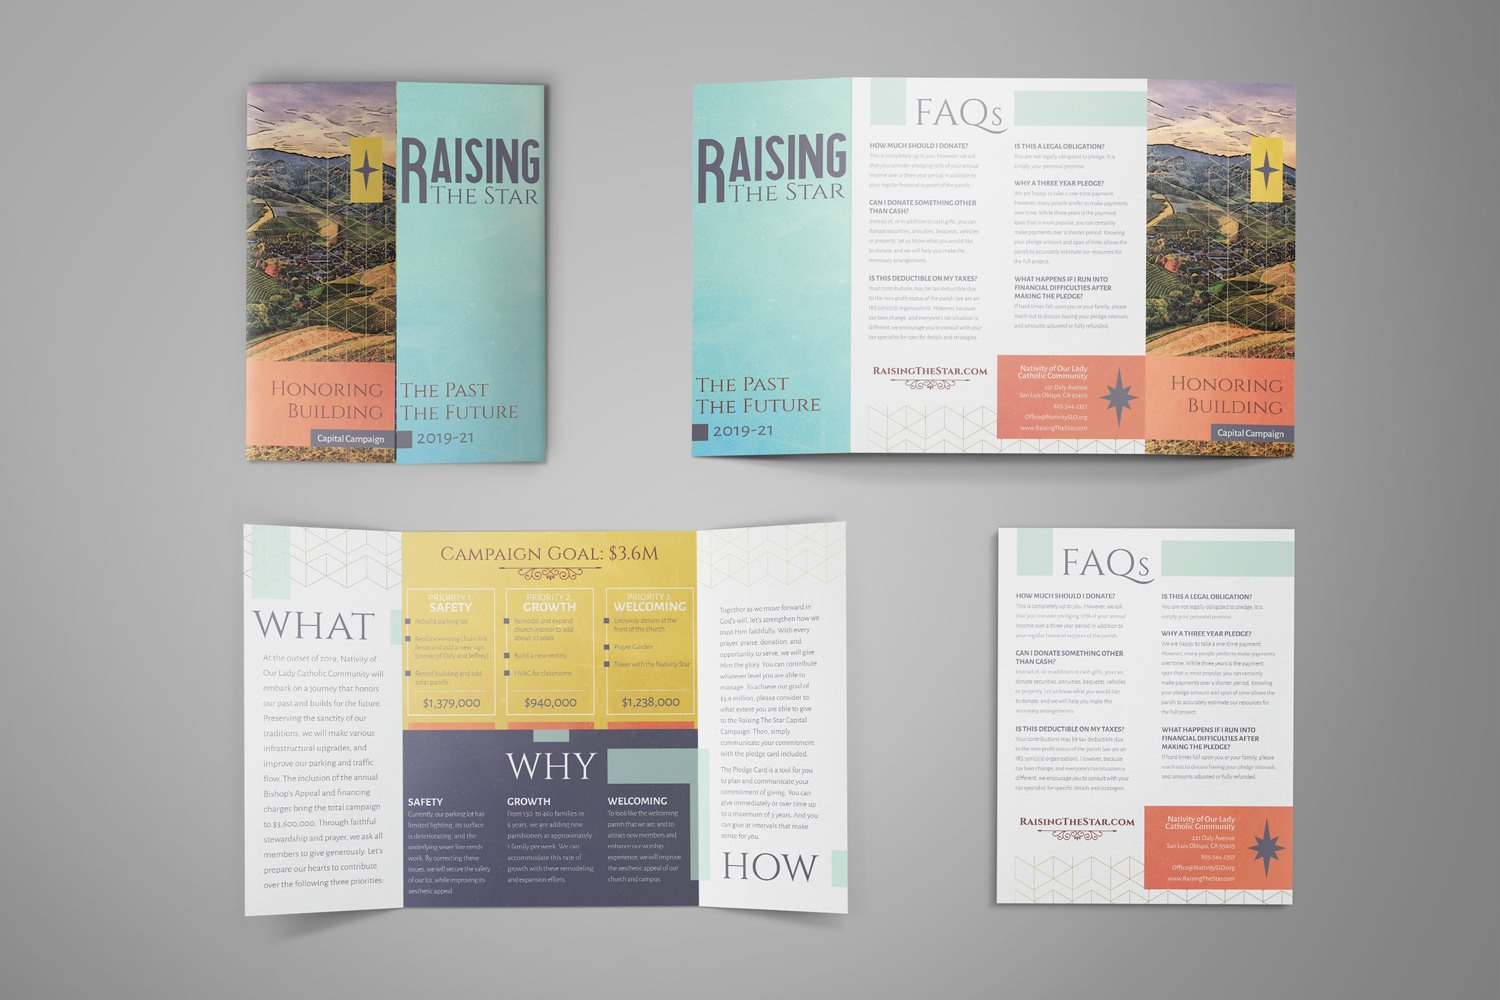 folded church capital campaign brochure for case statement of building campaign